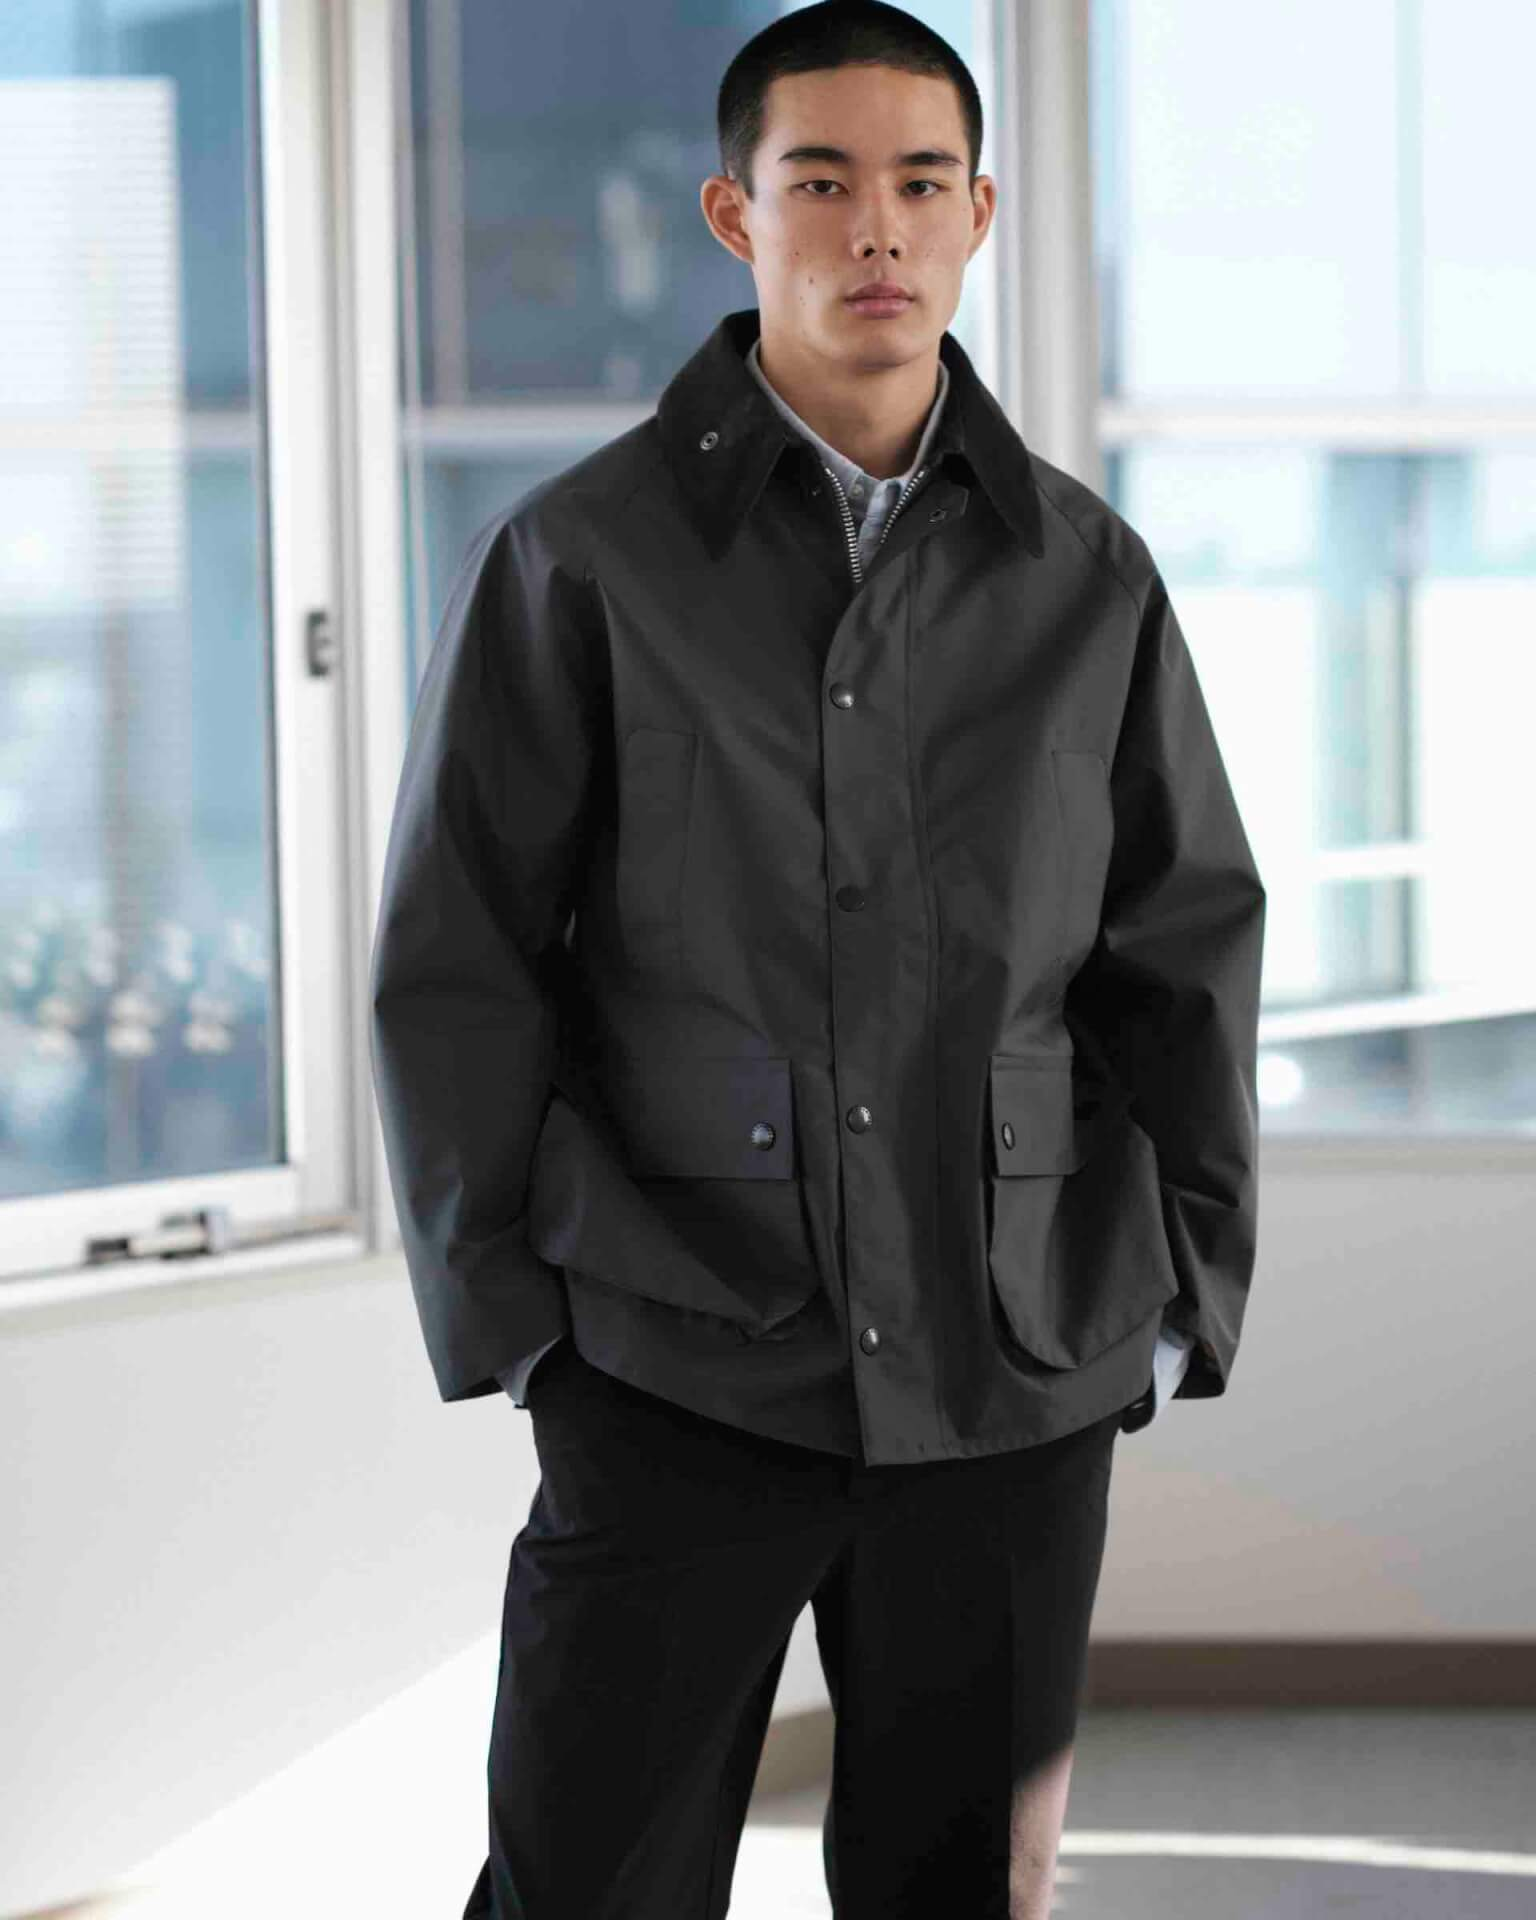 BarbourとworkahoLCのコラボアイテムが発売決定!OVER SIZE BEDALEモデルのジャケットが登場 life210913_urbs_barbour_1